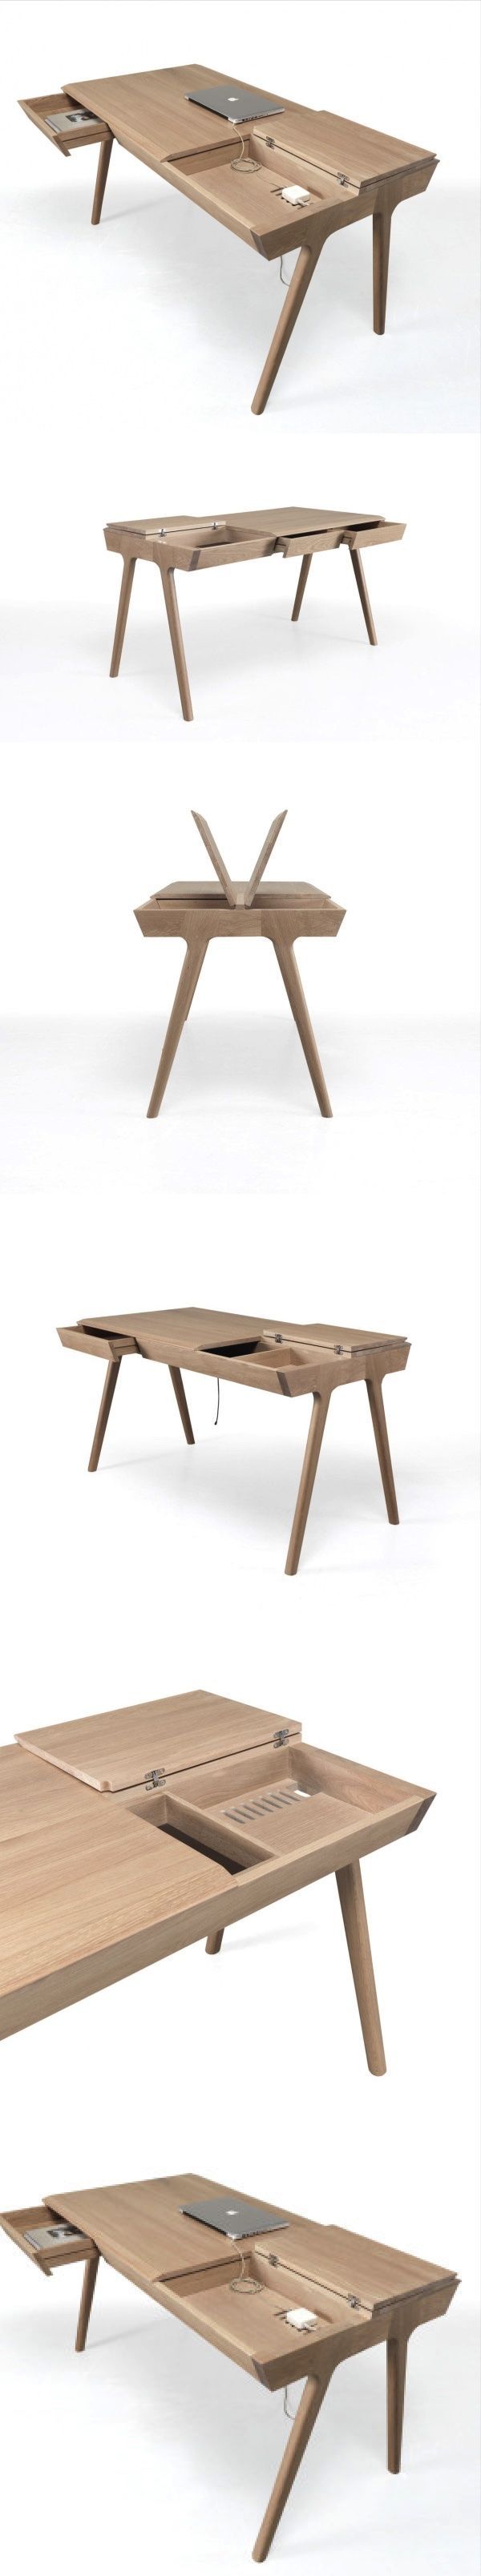 METIS: A Solid Wood Desk with Plenty of Storage #desk #Wood #design